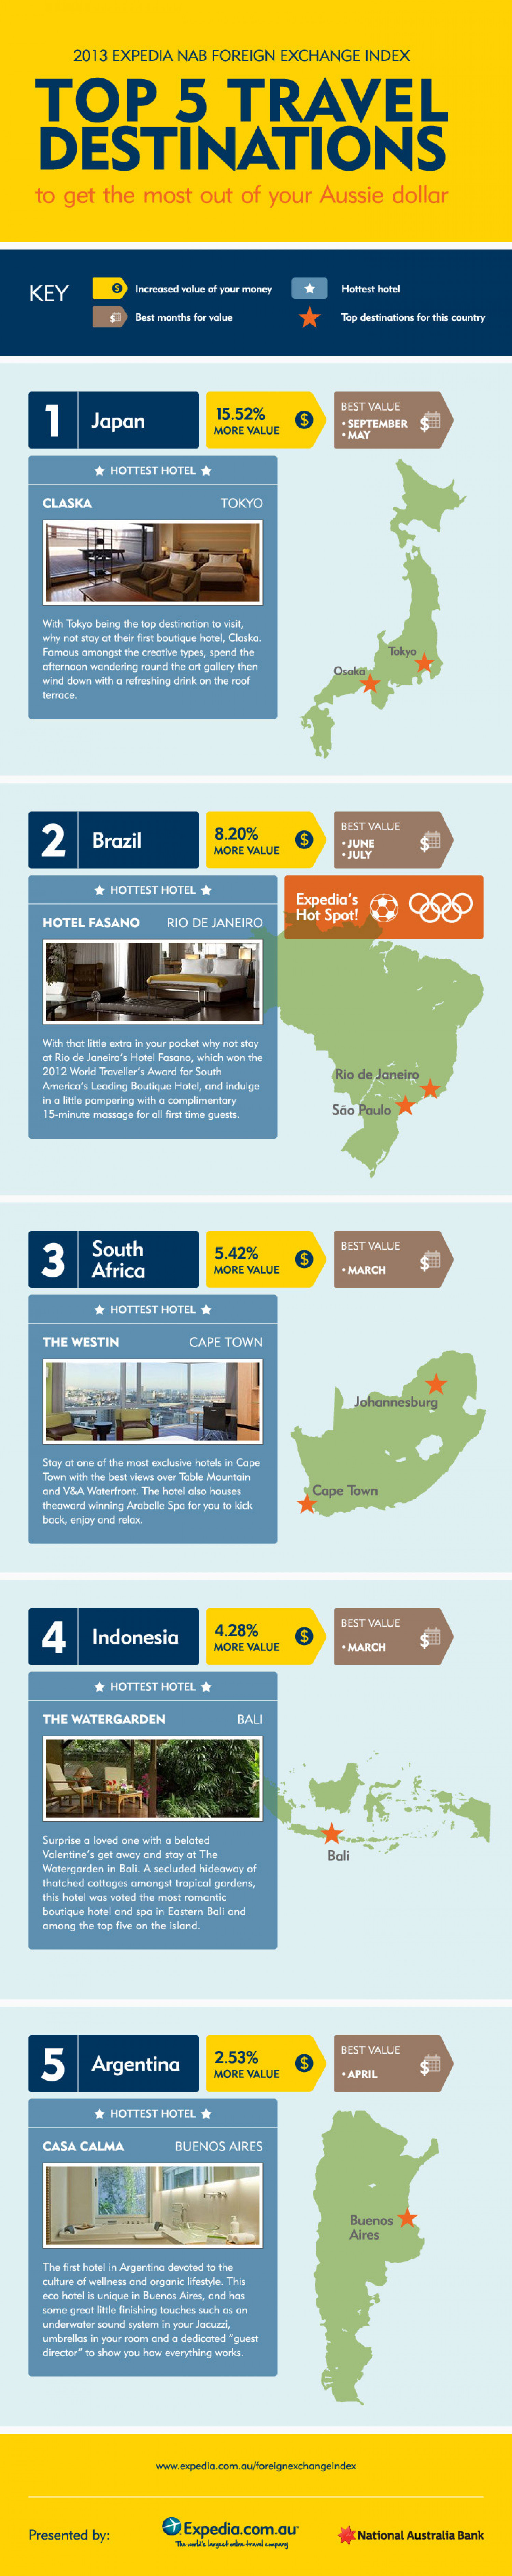 Best Value Holiday Destinations for Australians Infographic